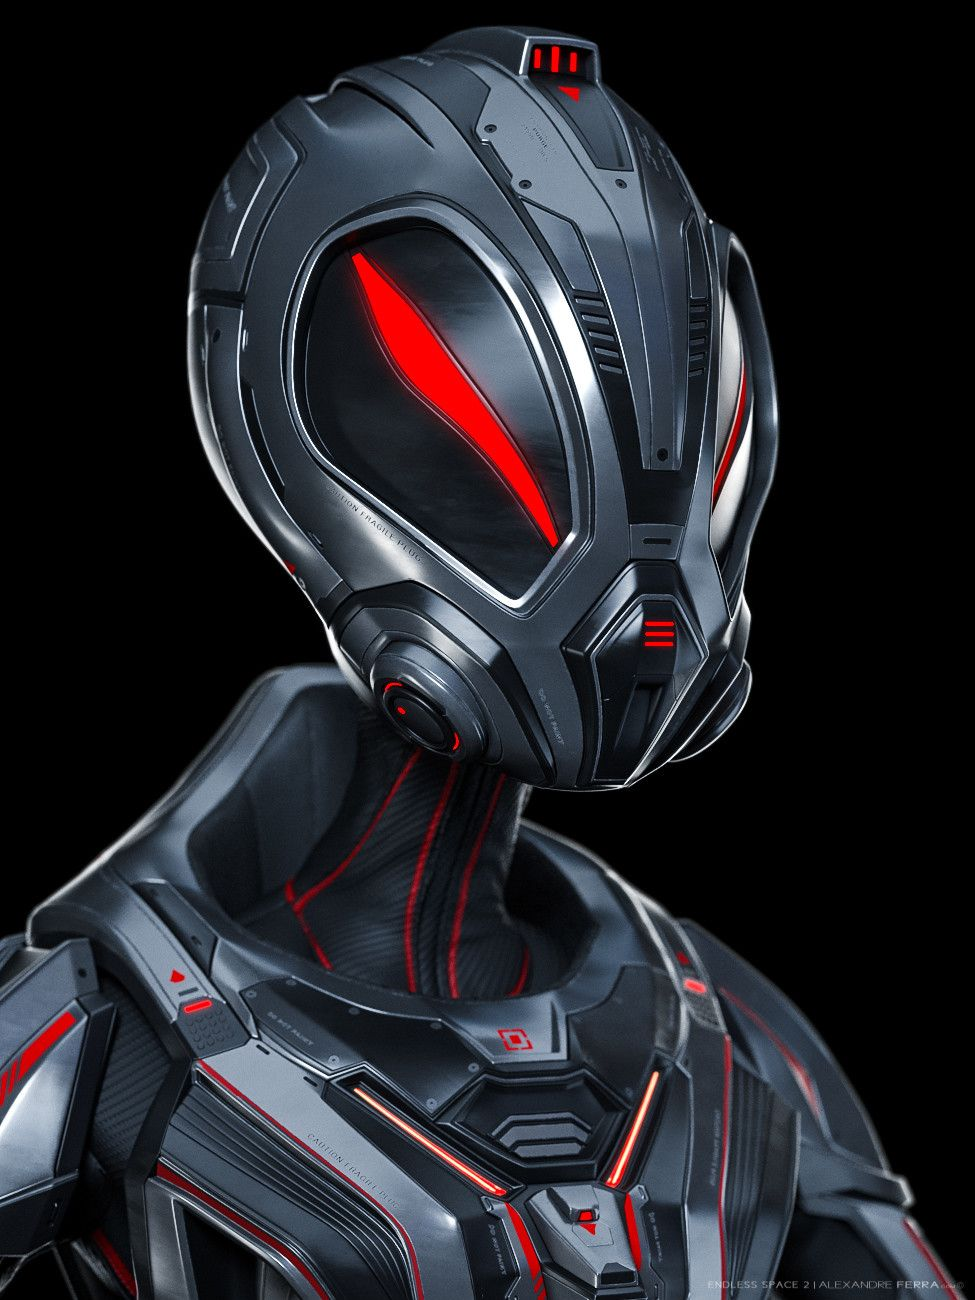 Top 10 Coolest Helmet Concepts On Artstation That Could Be